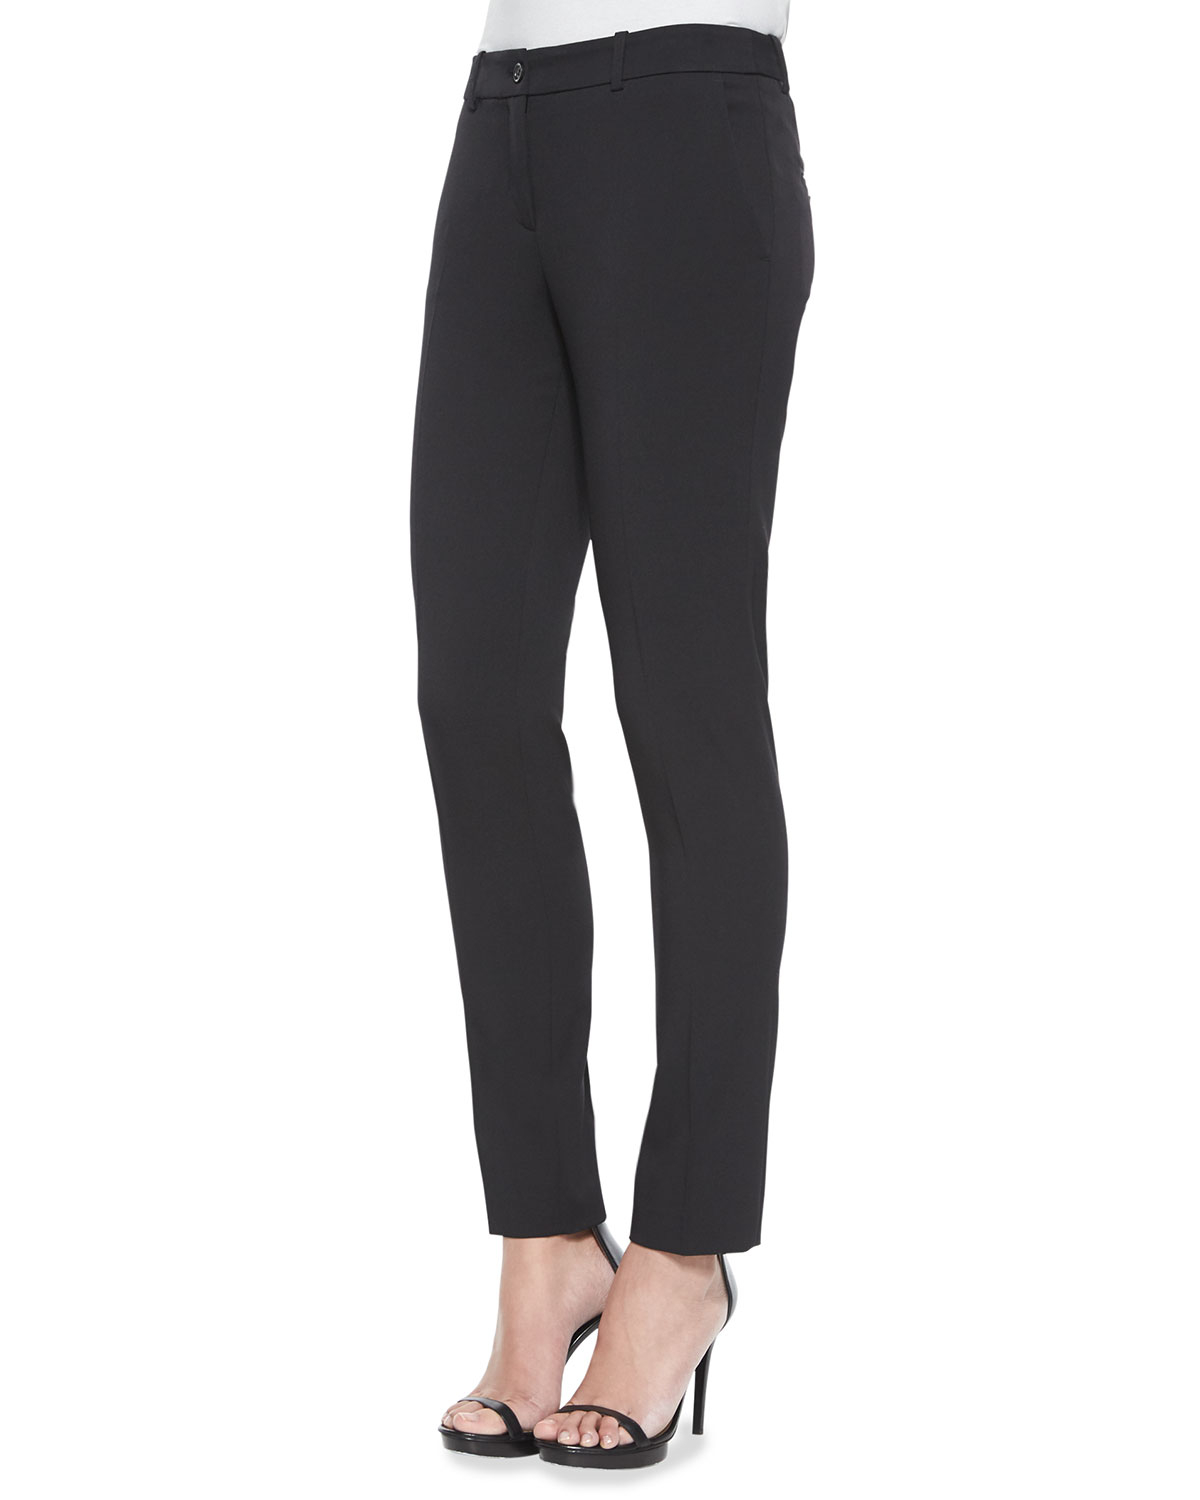 Brilliant Exposed Zippers On Both The Outer Thighs And Inner Ankles Feed To Its Subversive Style The Demi Ultra Skinny Modern Moto Comes In Two Washes Black And